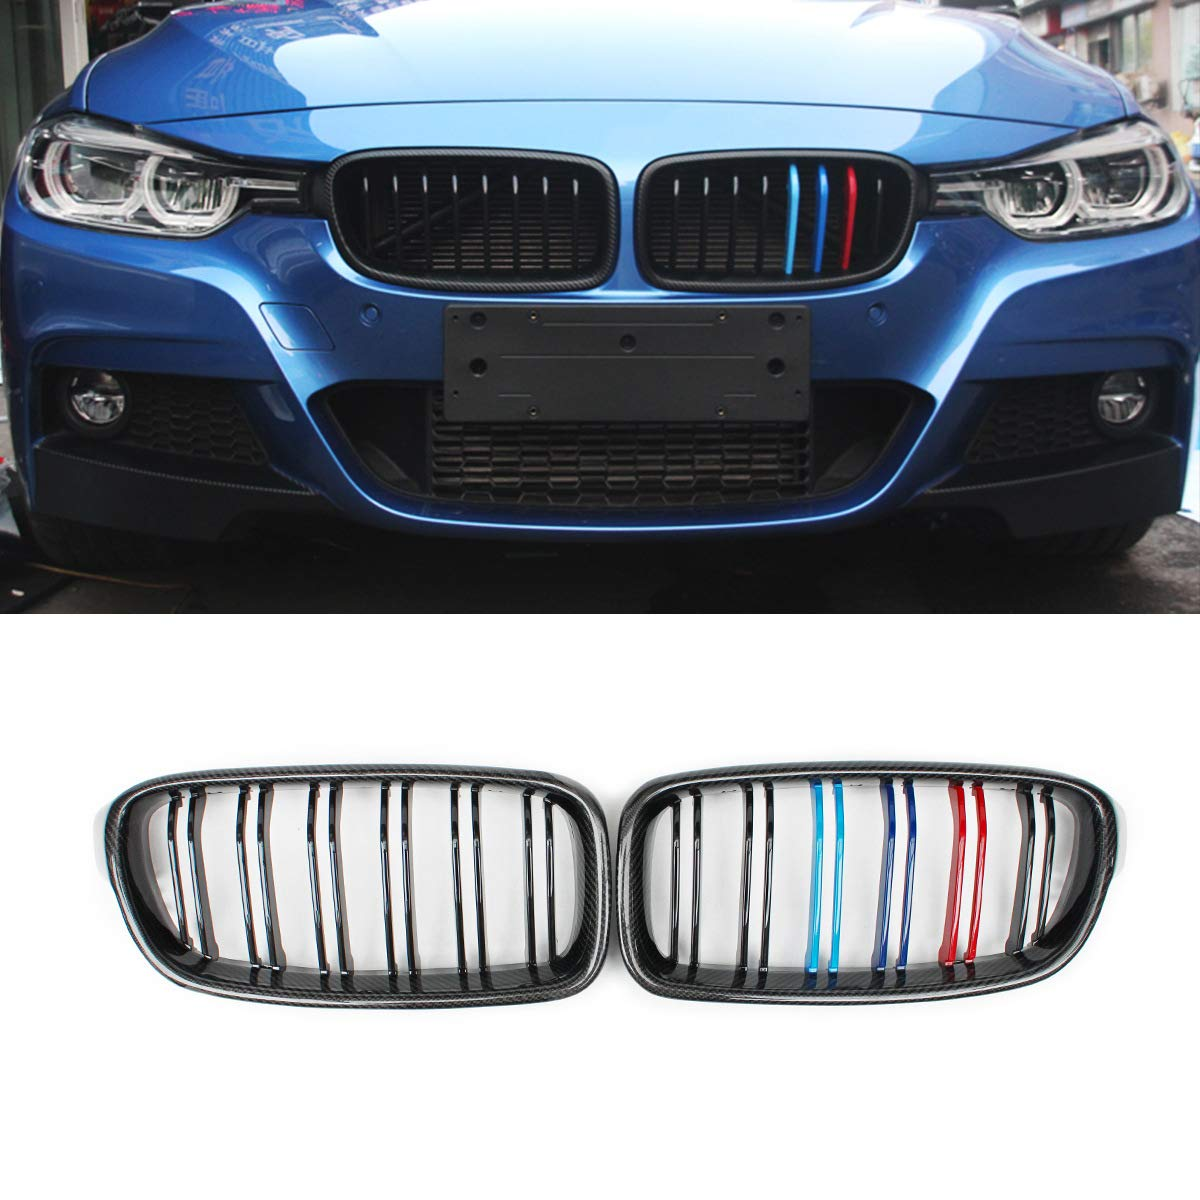 Carbon Fiber, gloss black F30 Grilles 1 Pair Replacement Front Grills for 3 Series F30 F31